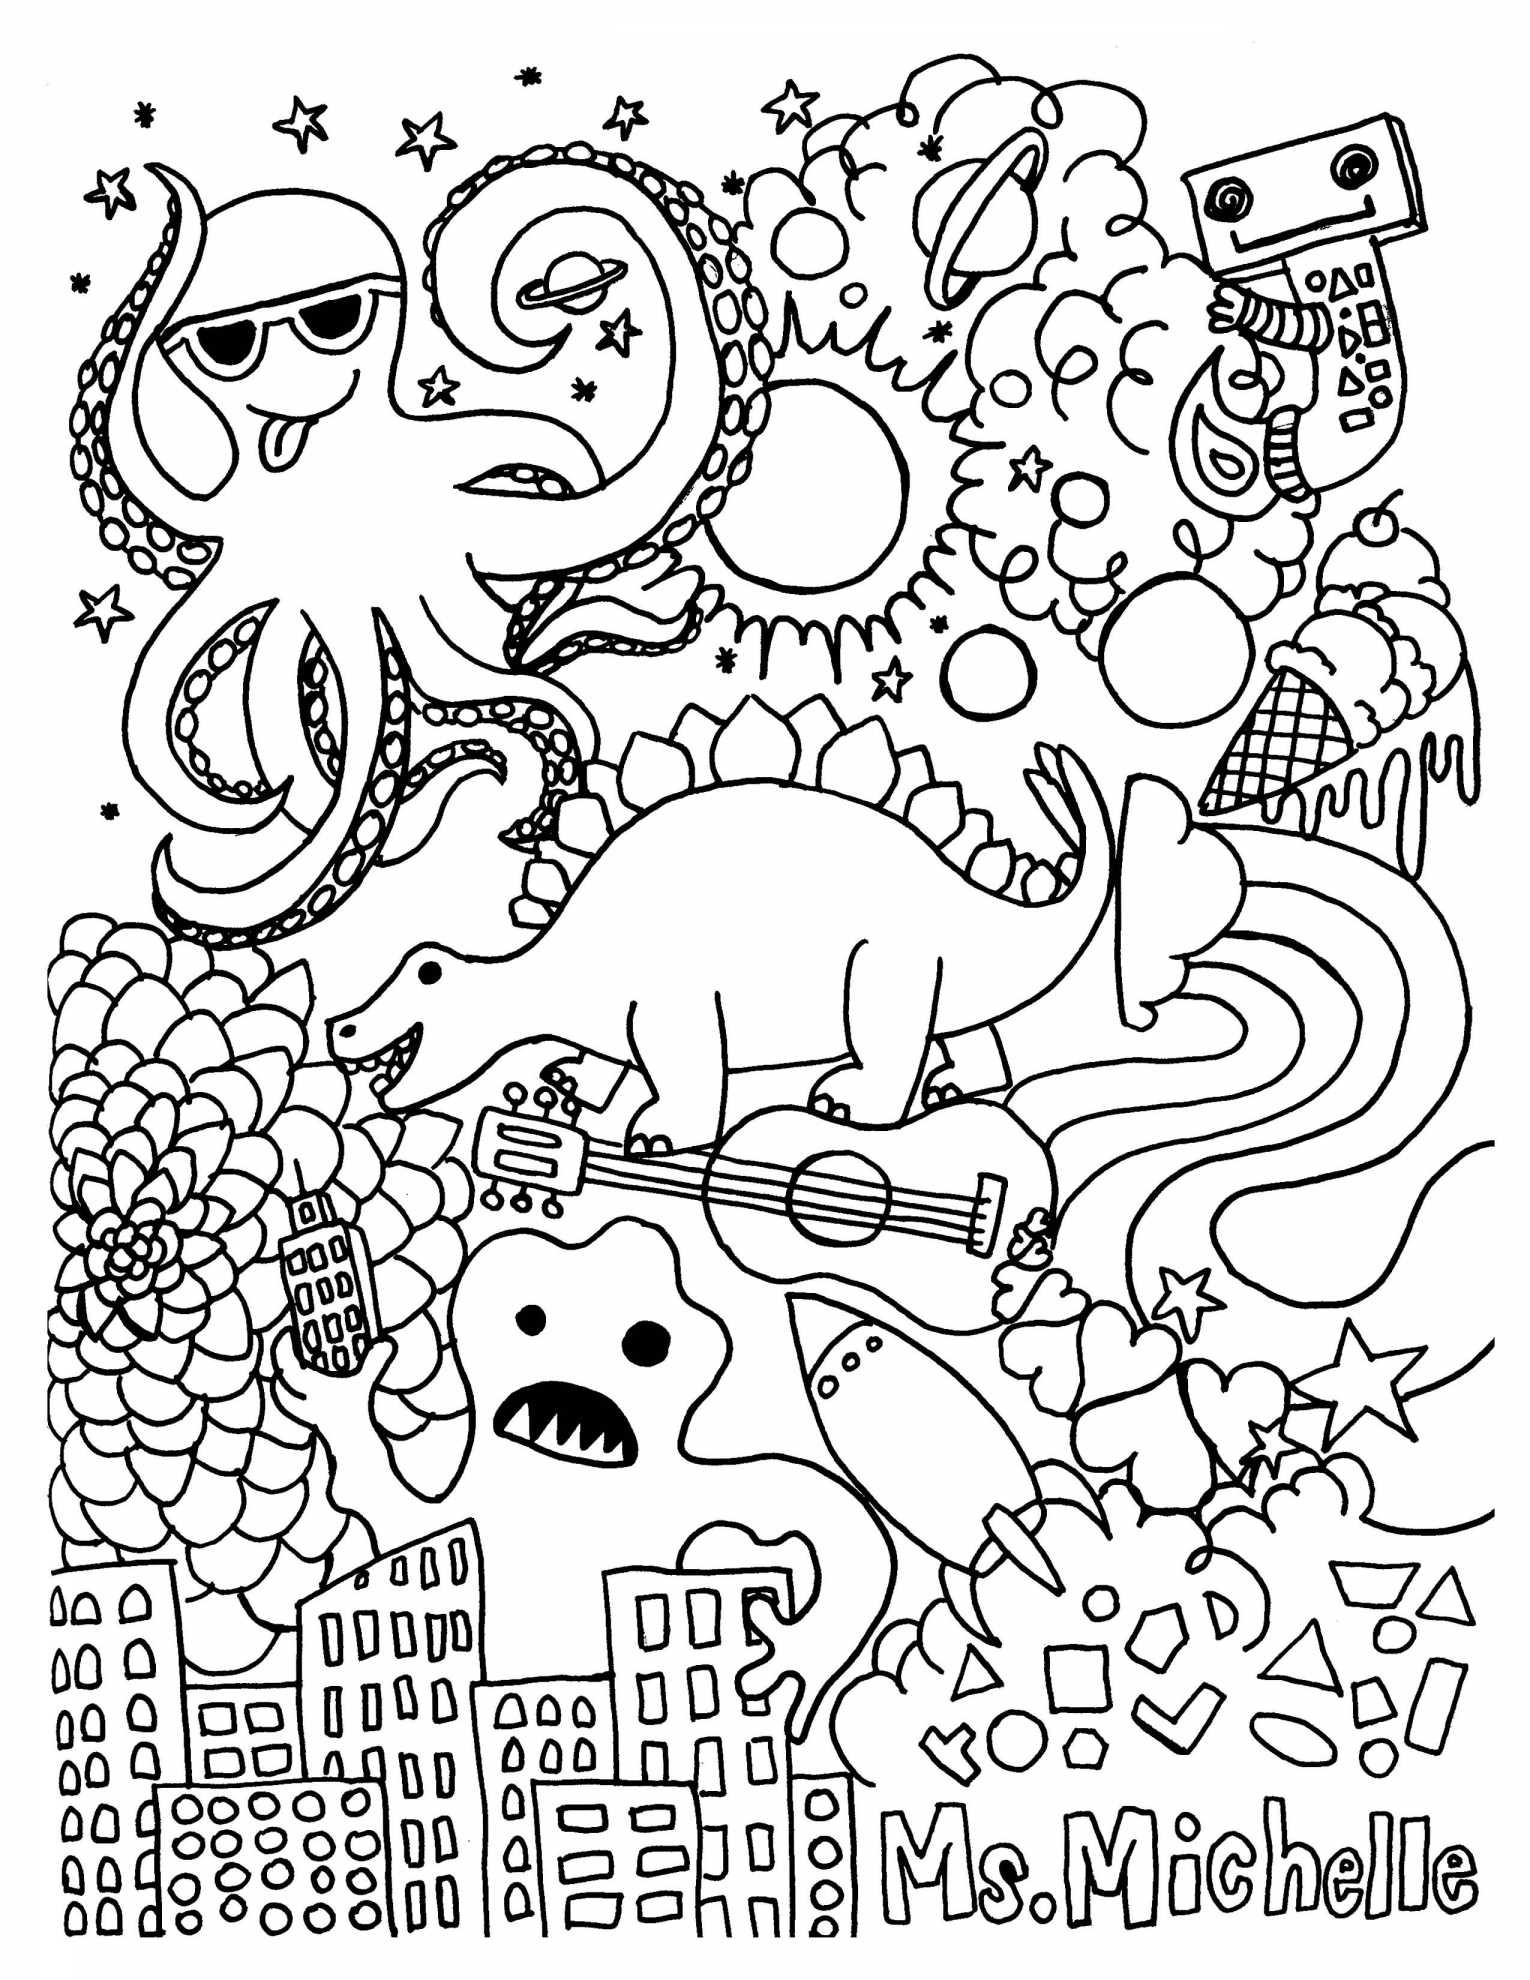 children christian coloring pages Collection-Dice Coloring Page Kids Coloring Line Lovely Hair Coloring Pages New Line Coloring 0d 20-l